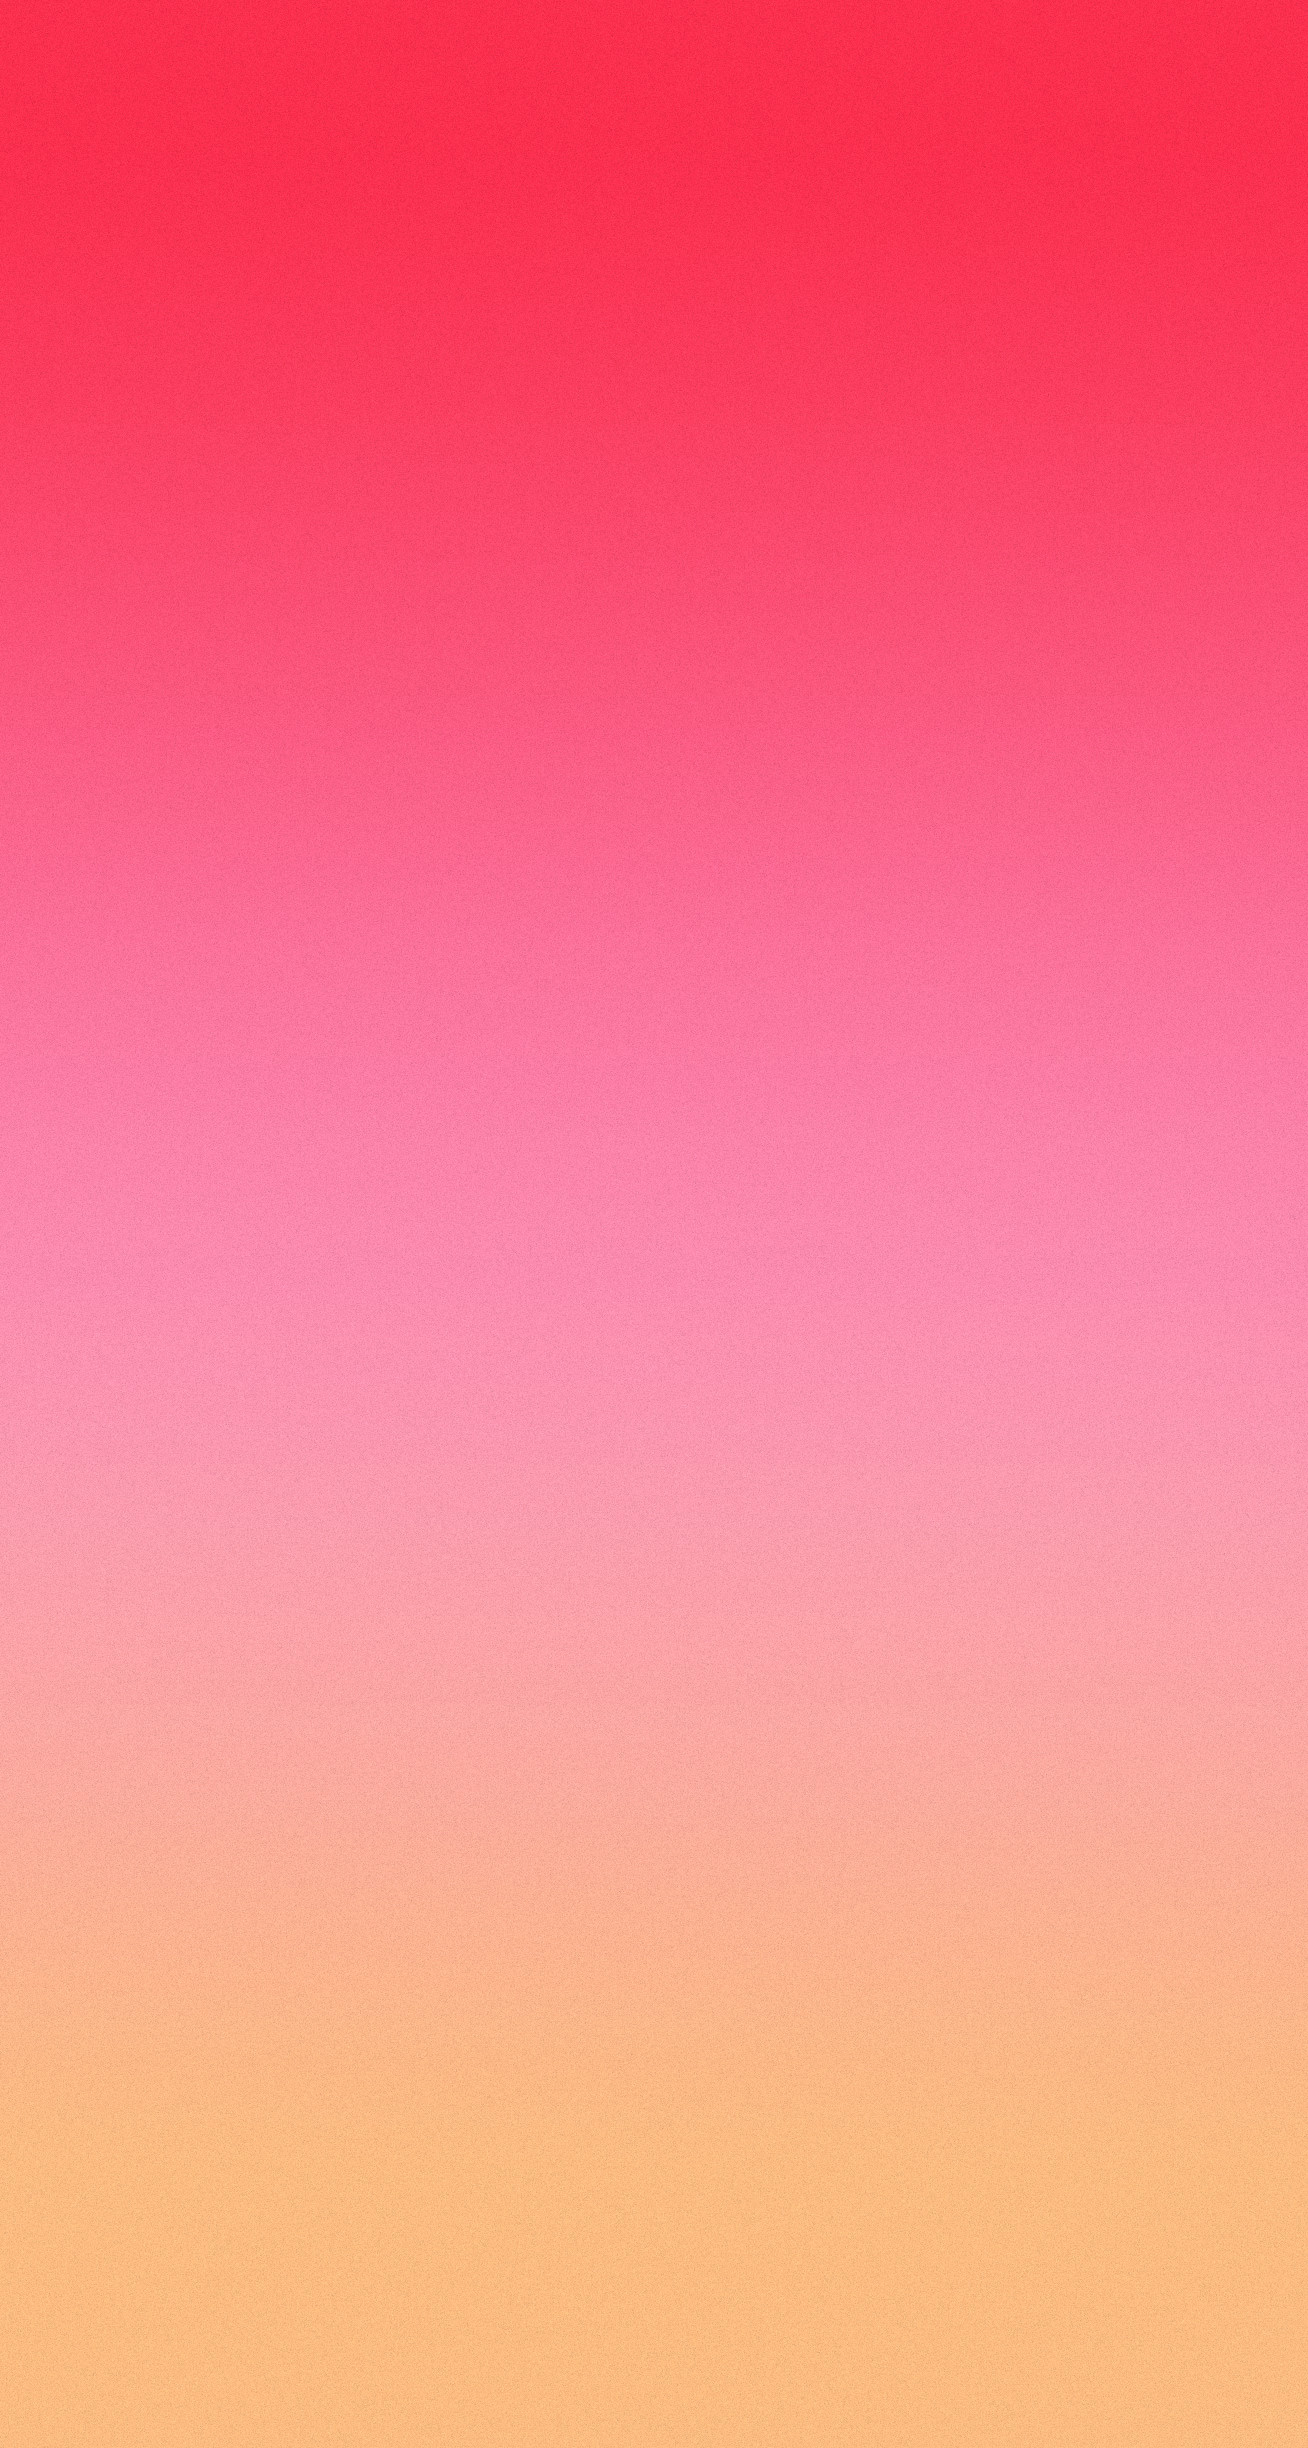 Girly Iphone Wallpaper Tumblr Girly Iphone Wallpaper F Ac D